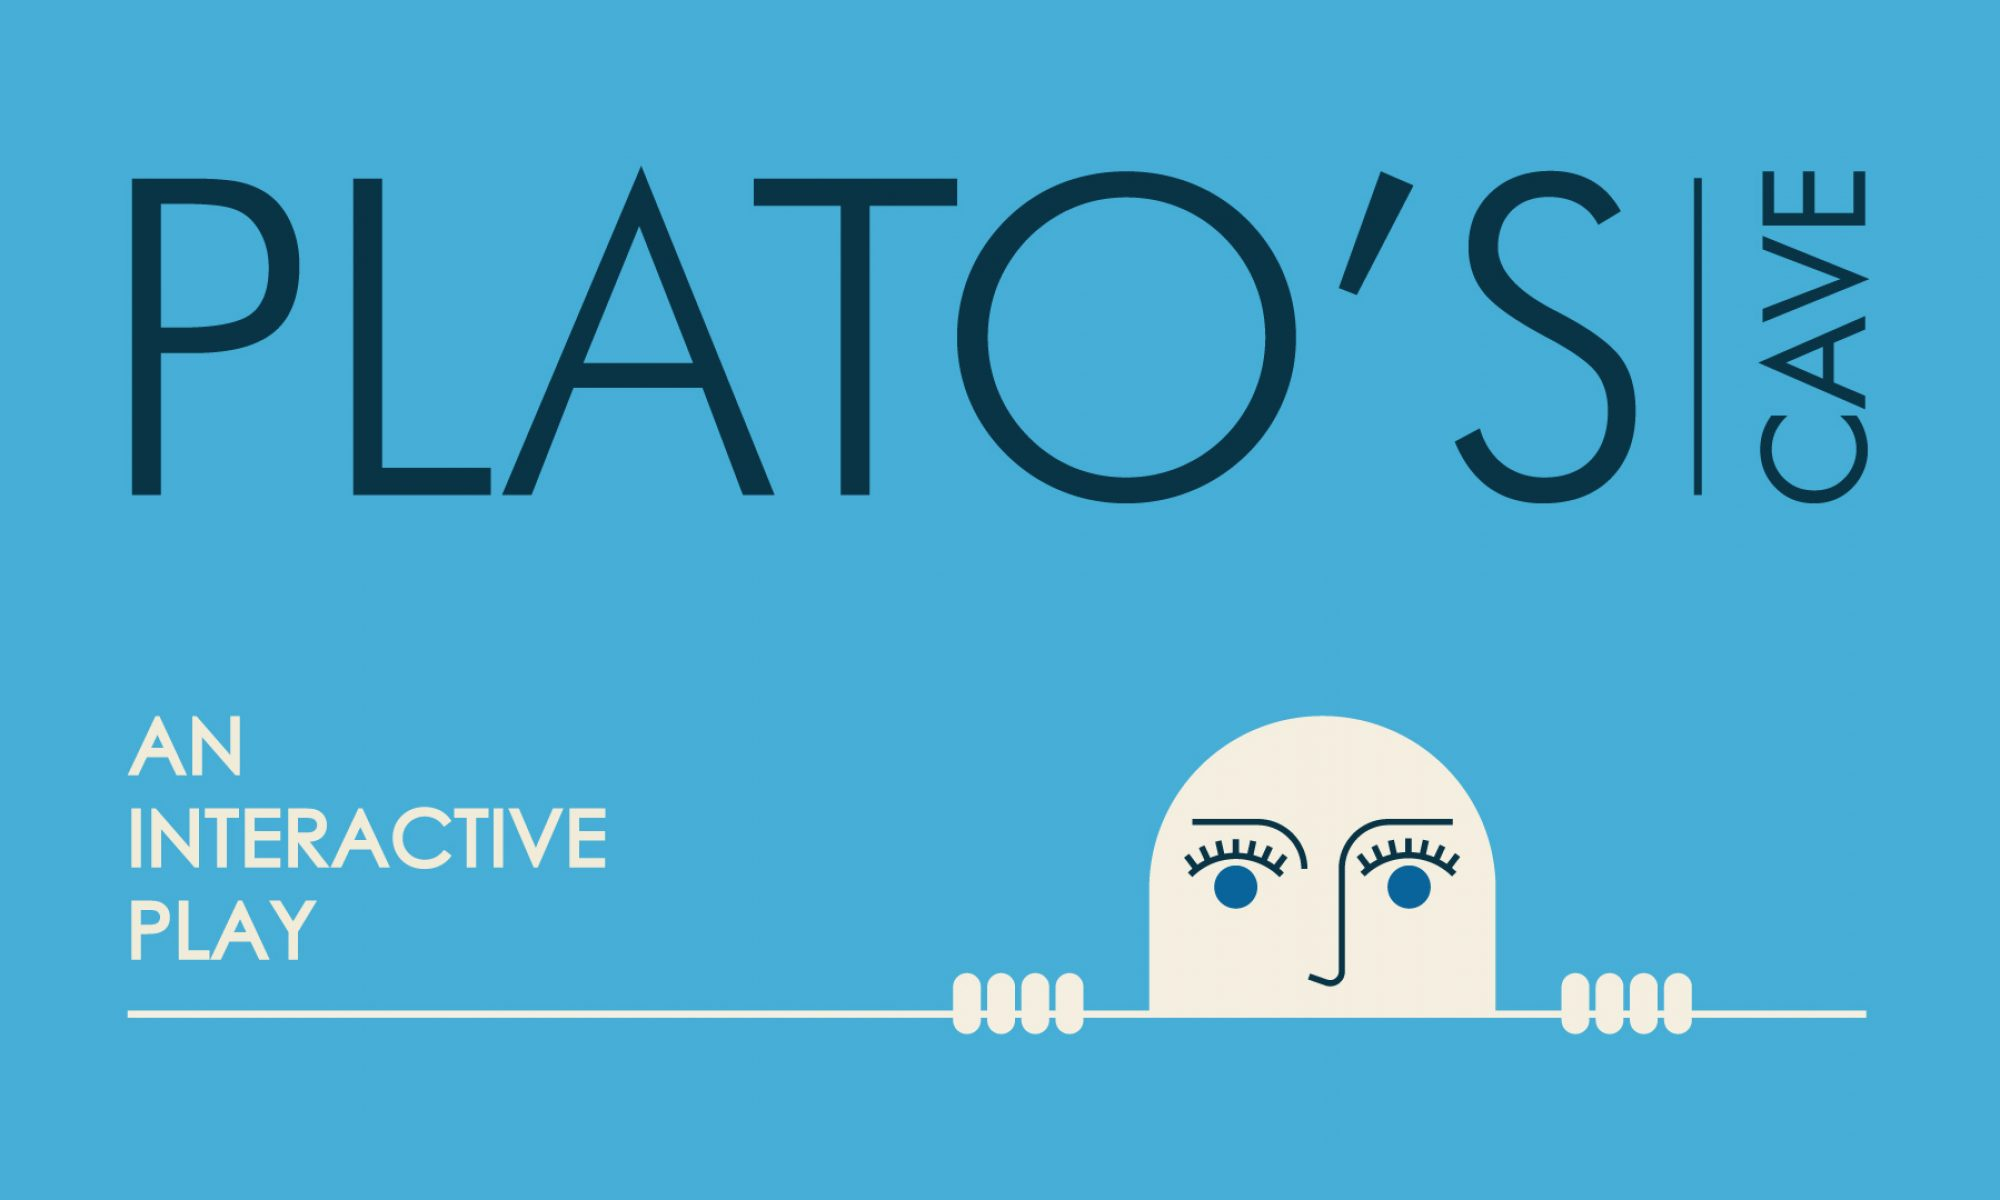 cropped-plato_fb_event_cover-01.jpg